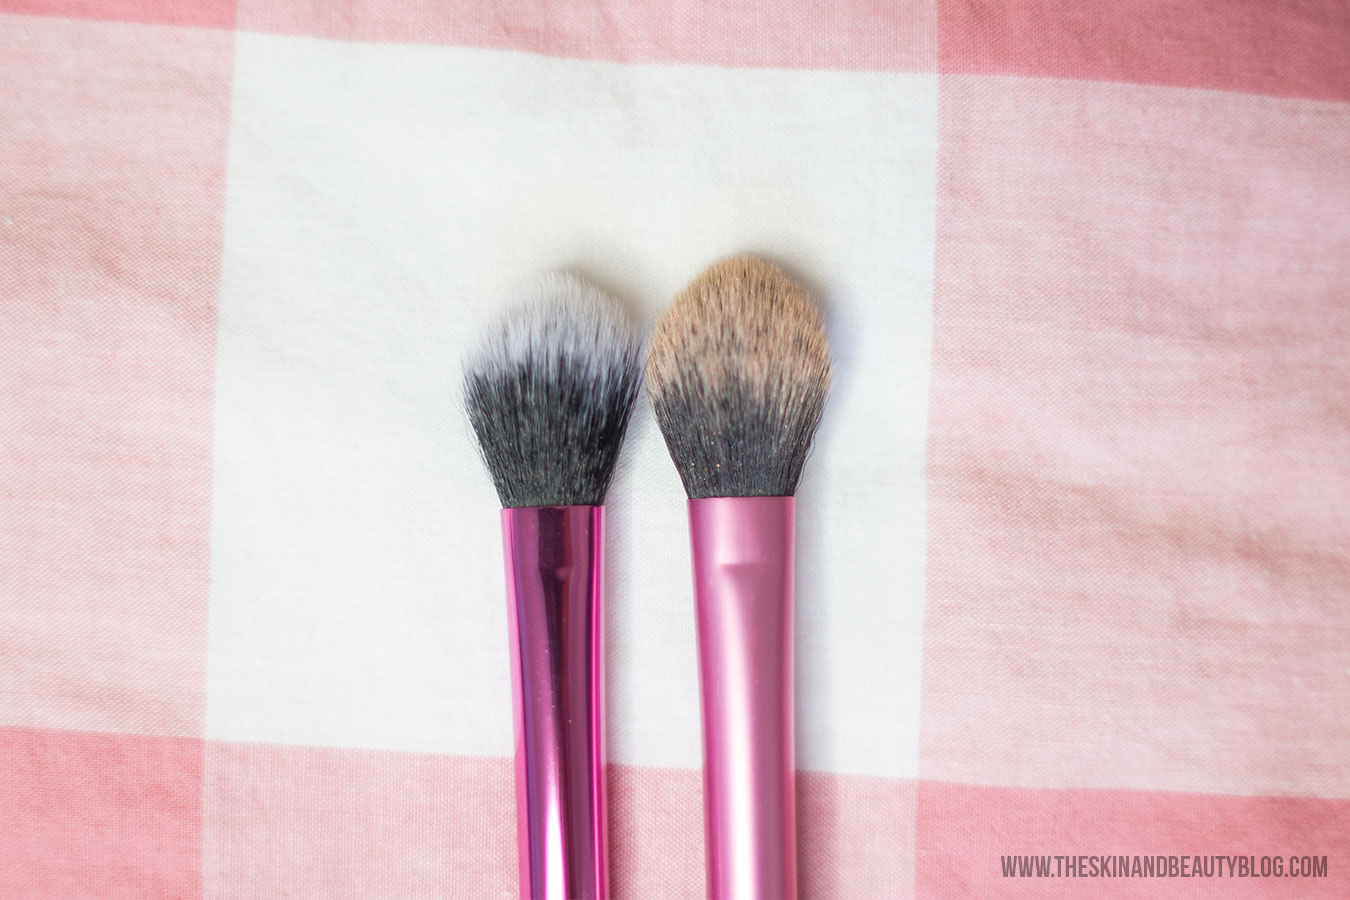 Real Techniques Sculpting Brush Set Review